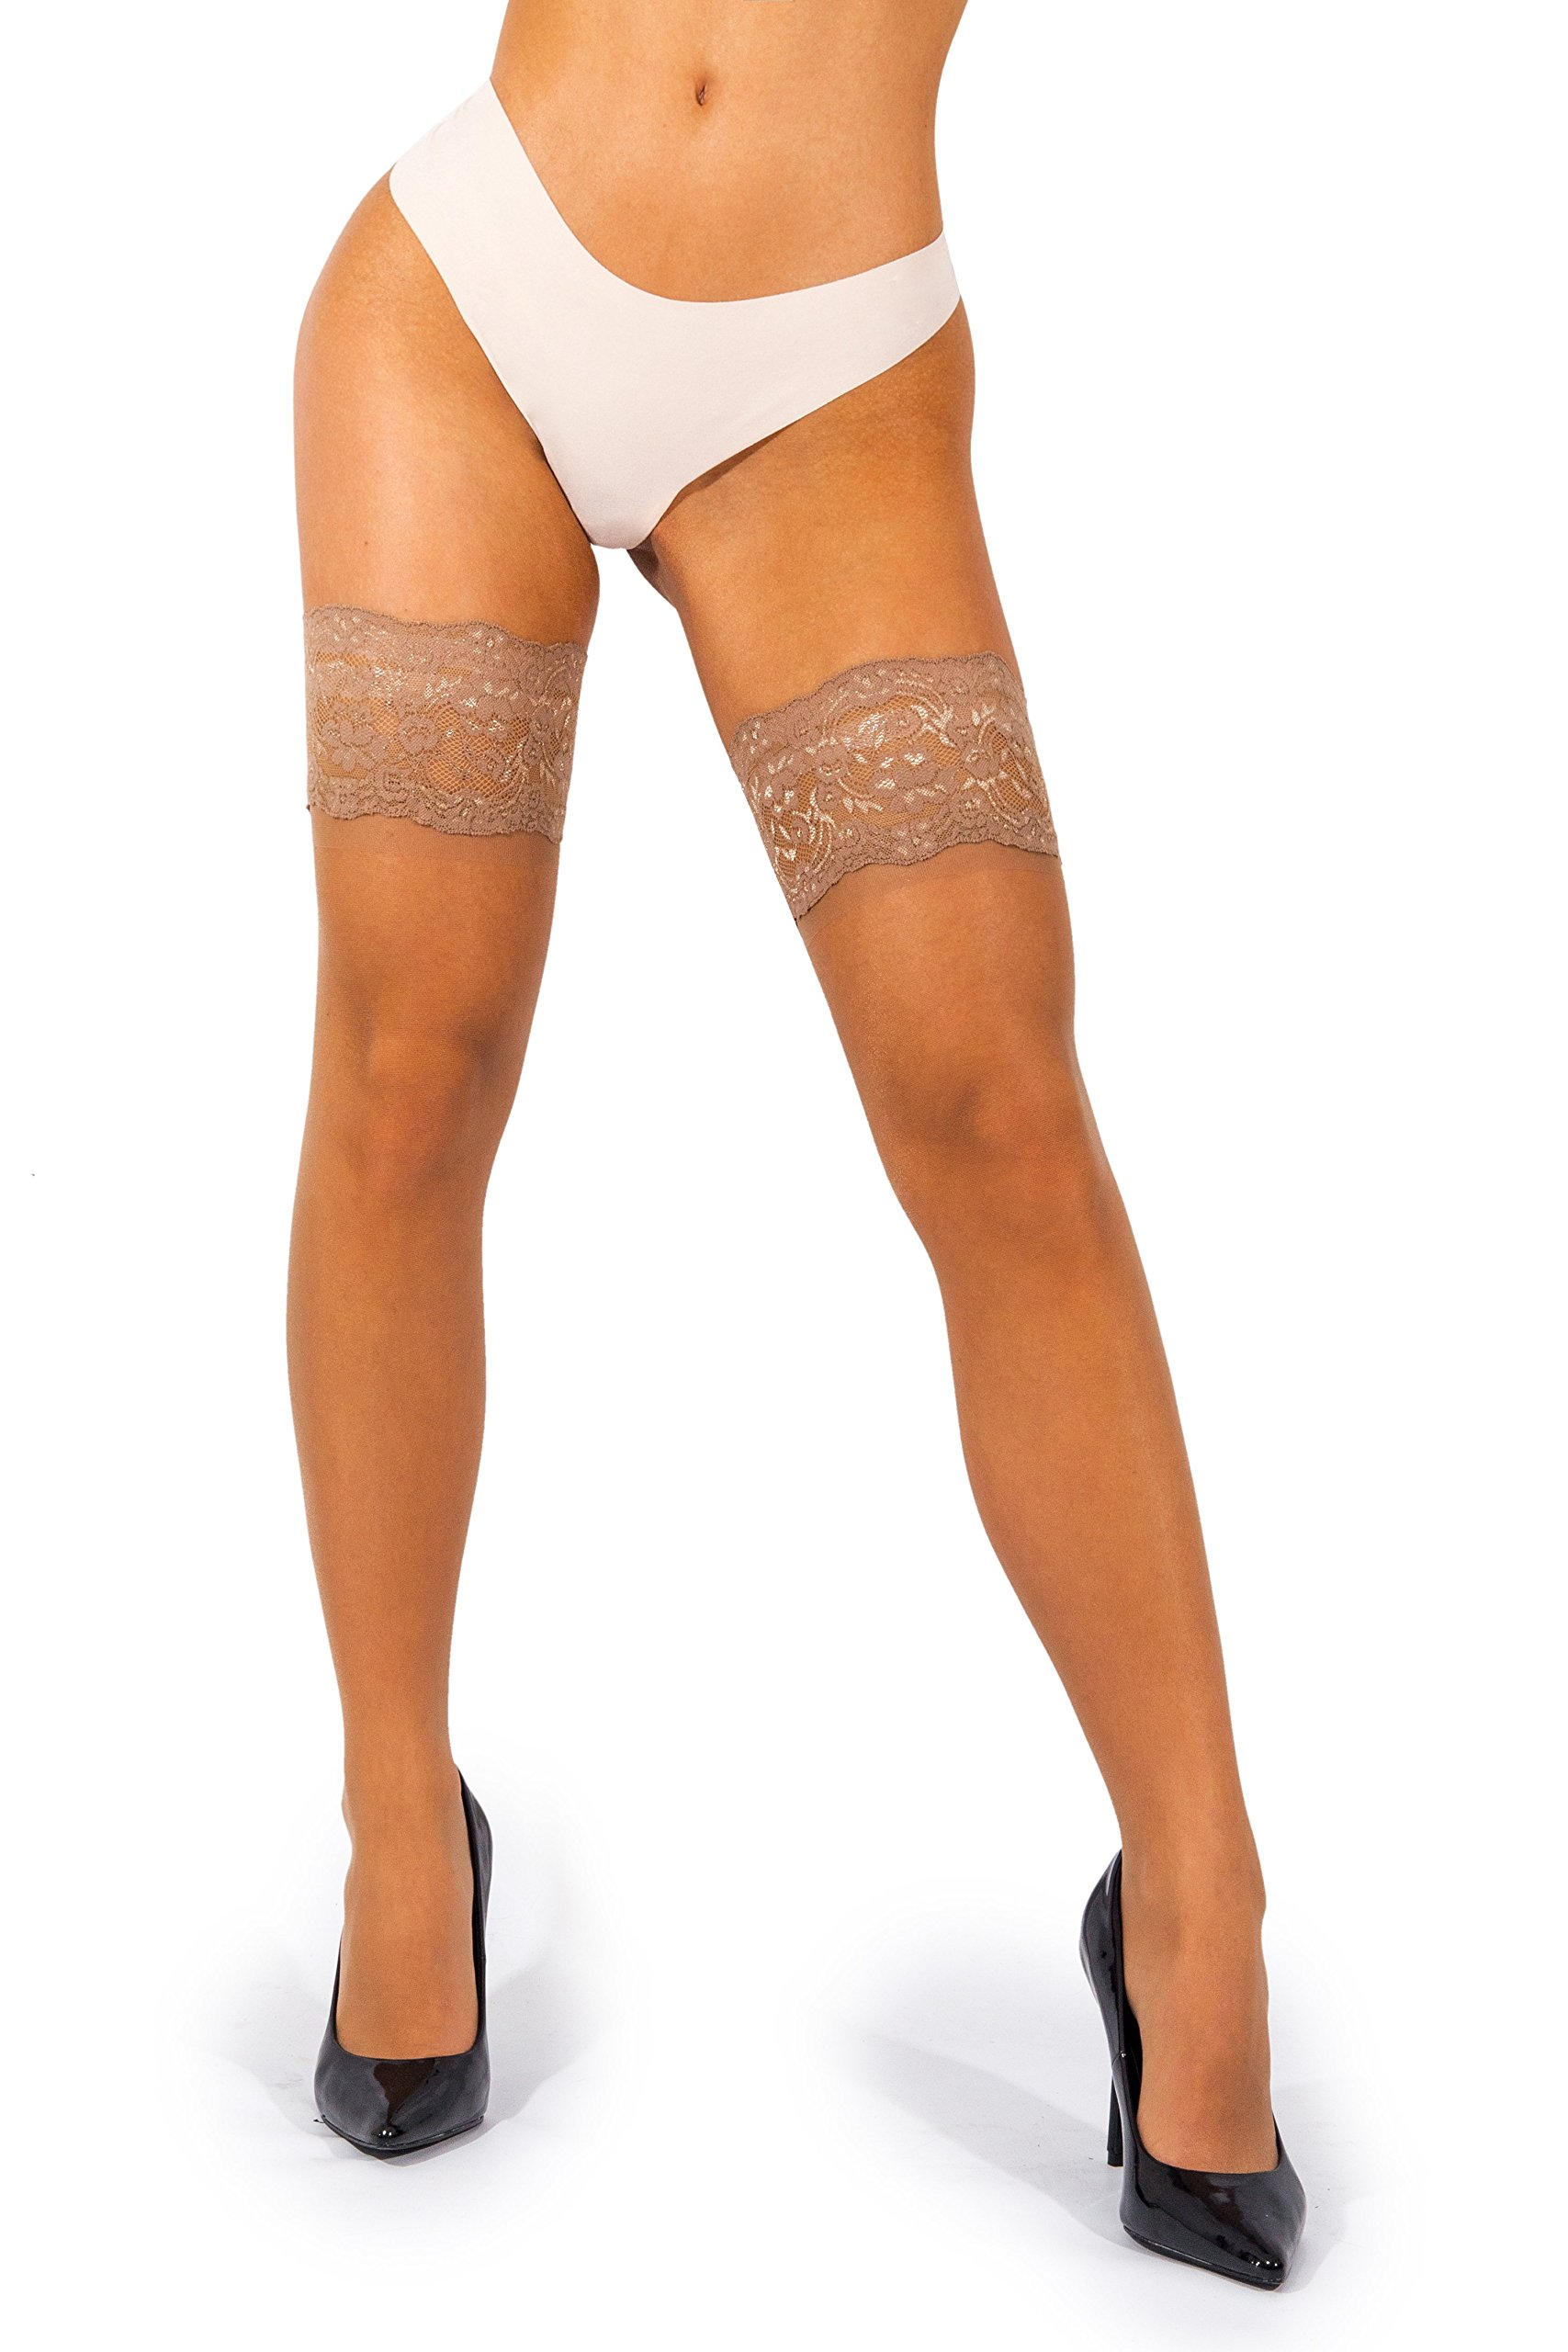 sofsy Lace Thigh-High Sheer Hold-Up Nylon Pantyhose Stockings Deep Wide Silicone Top 20 Denier [Made in Italy] Tan Beige Coffee 3/4 Medium/Large cd